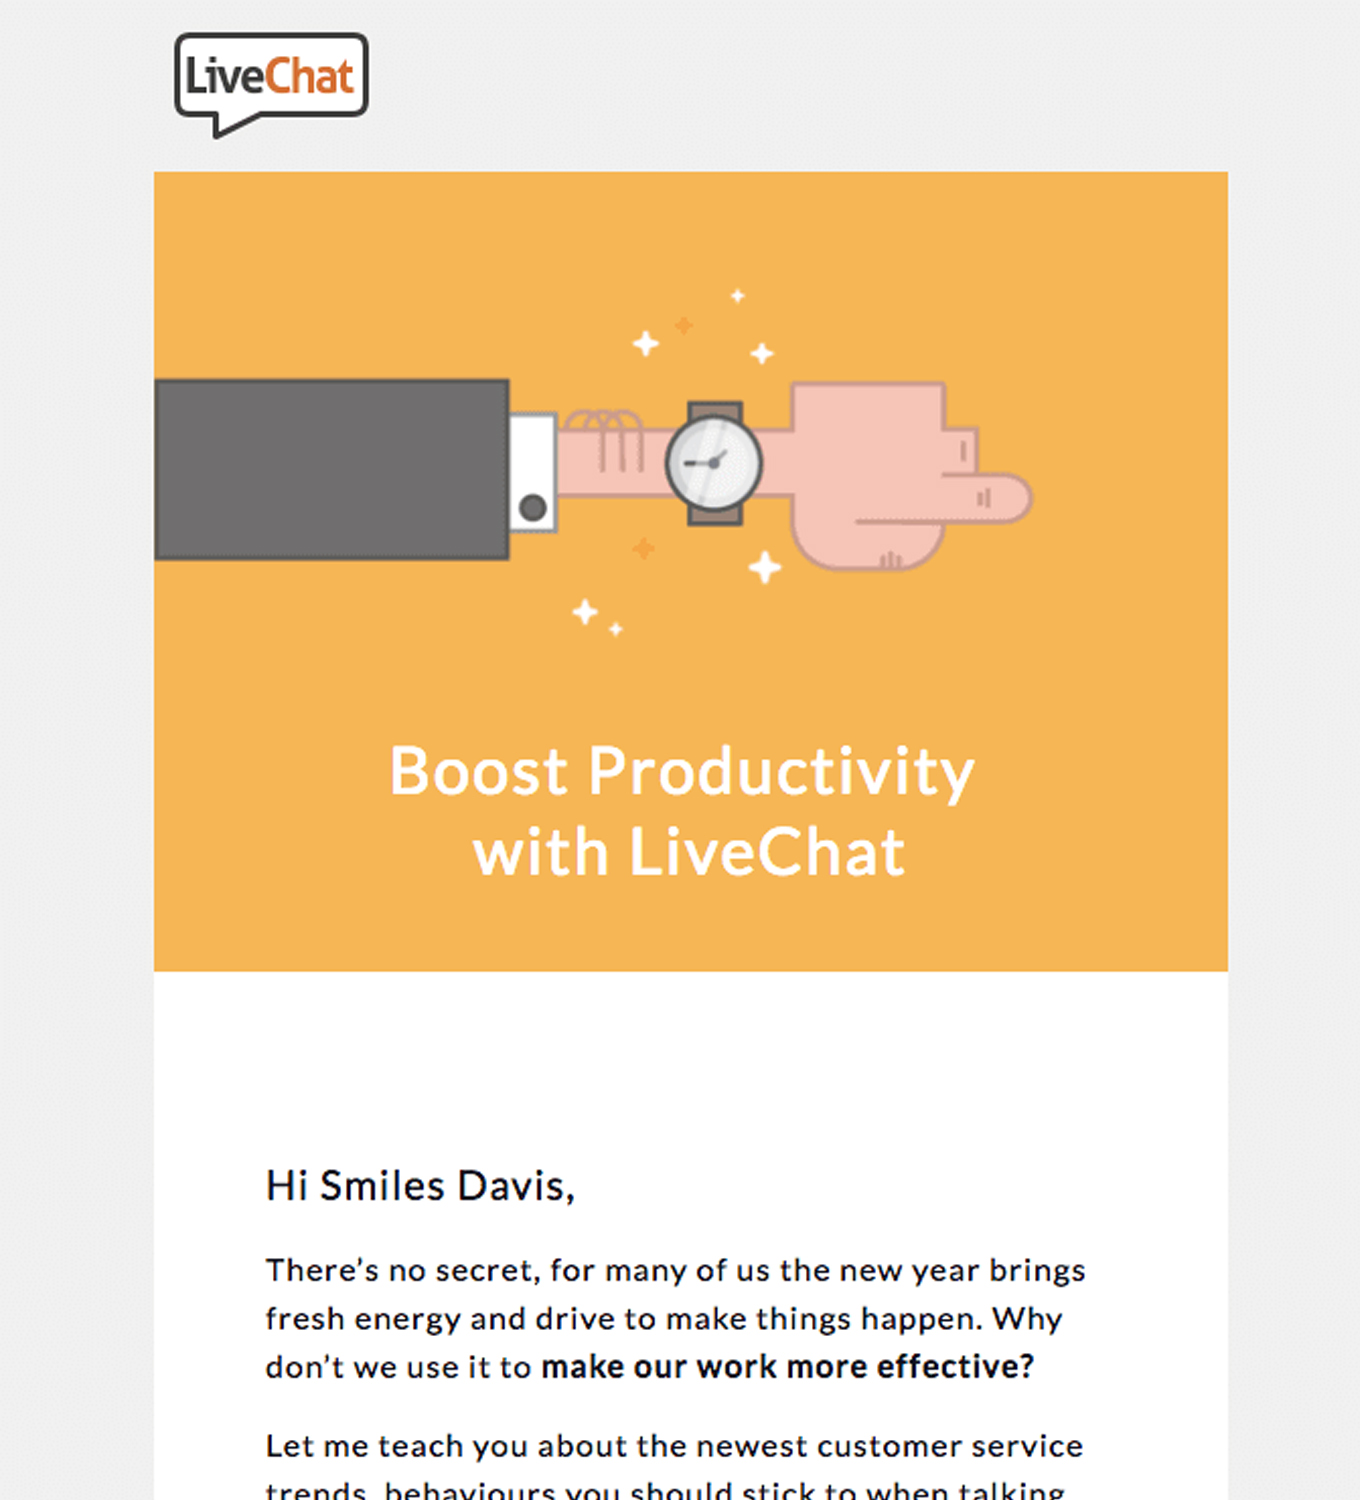 Email Design Trends 2017: 11 Effective Ways to Engage the